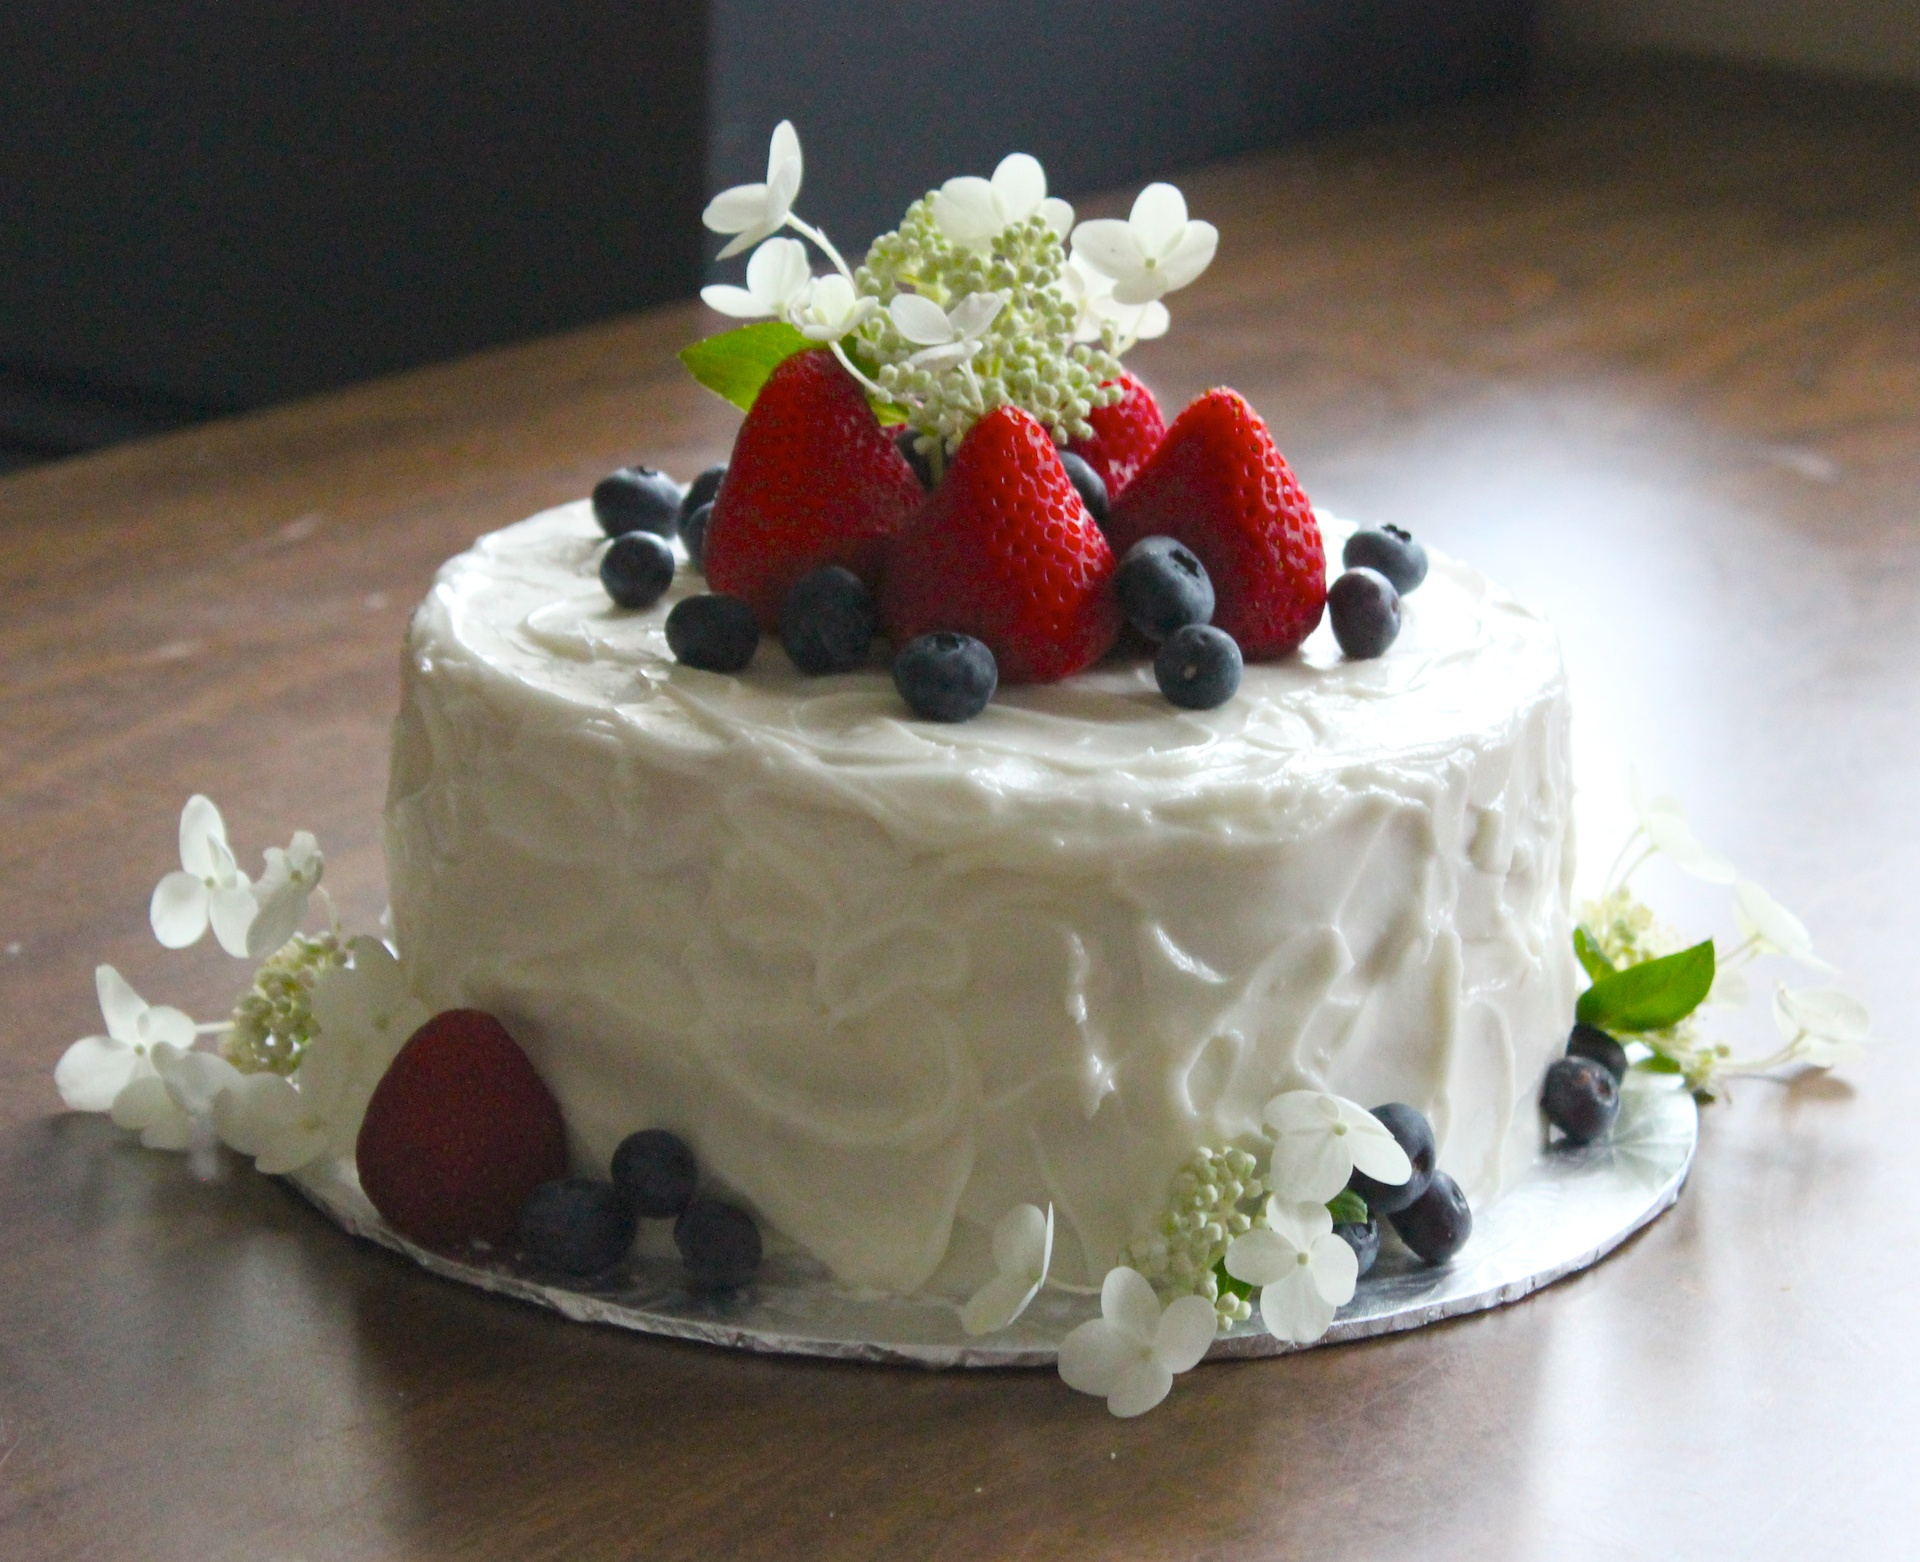 Rustic Birthday Cake with Fresh Fruit & Flowers